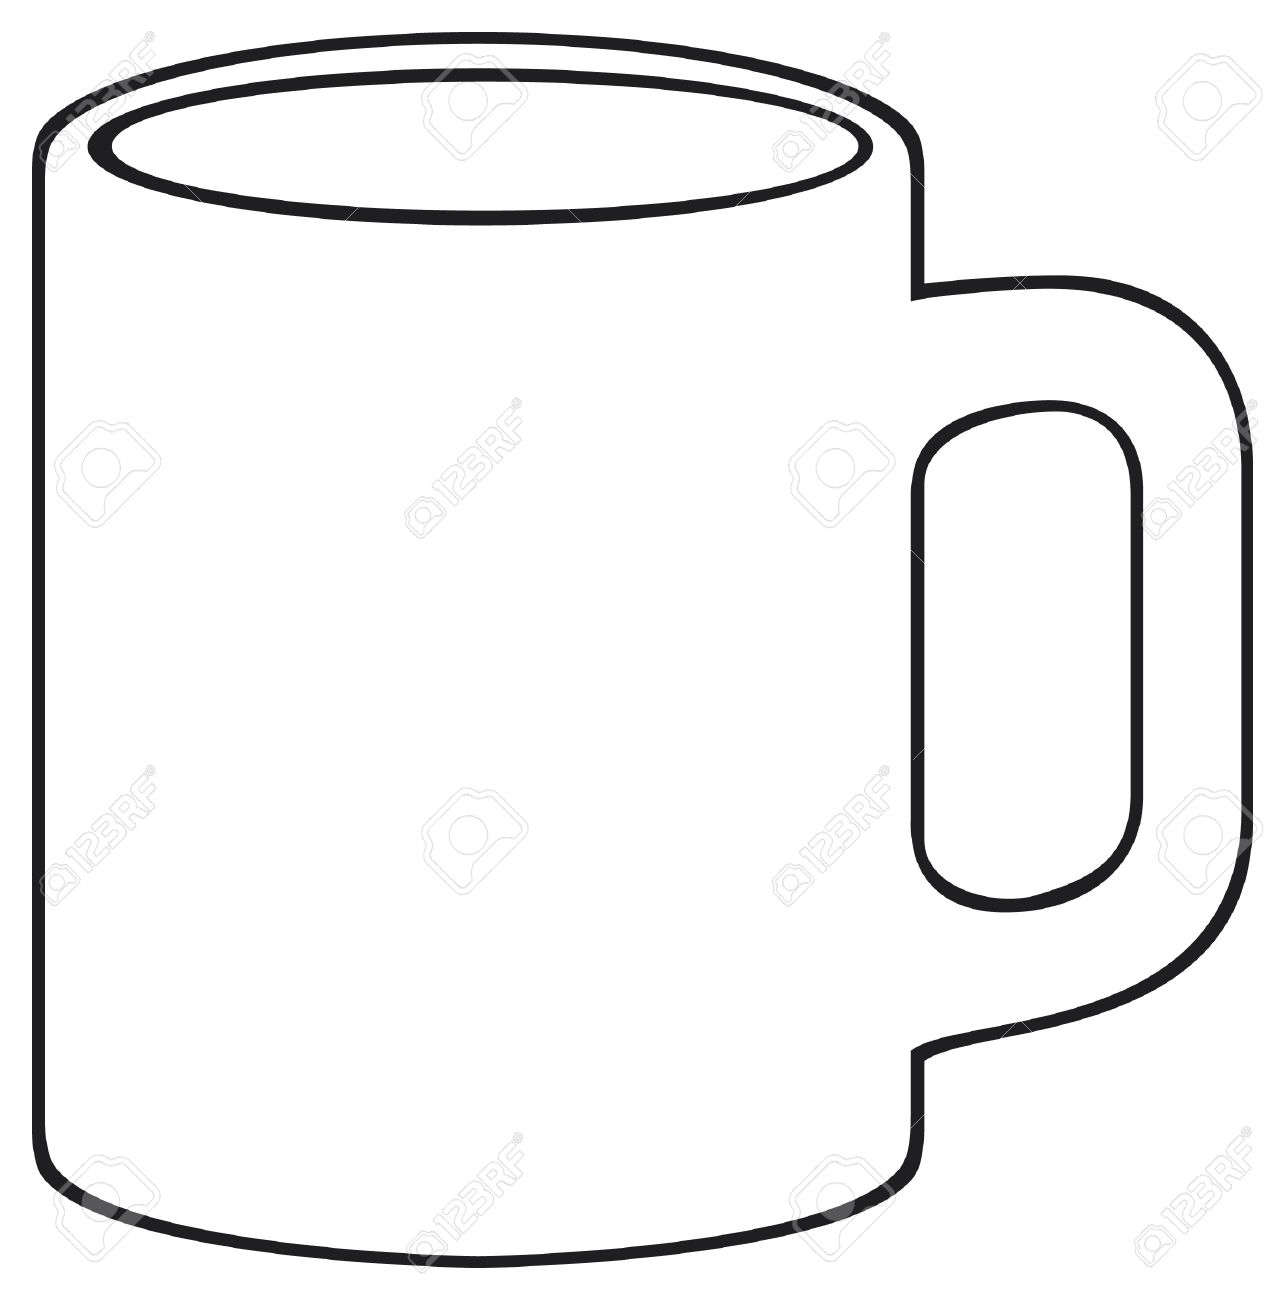 coffee mug white cup royalty free cliparts vectors and stock rh 123rf com coffee mug clipart black and white coffee mug clipart free